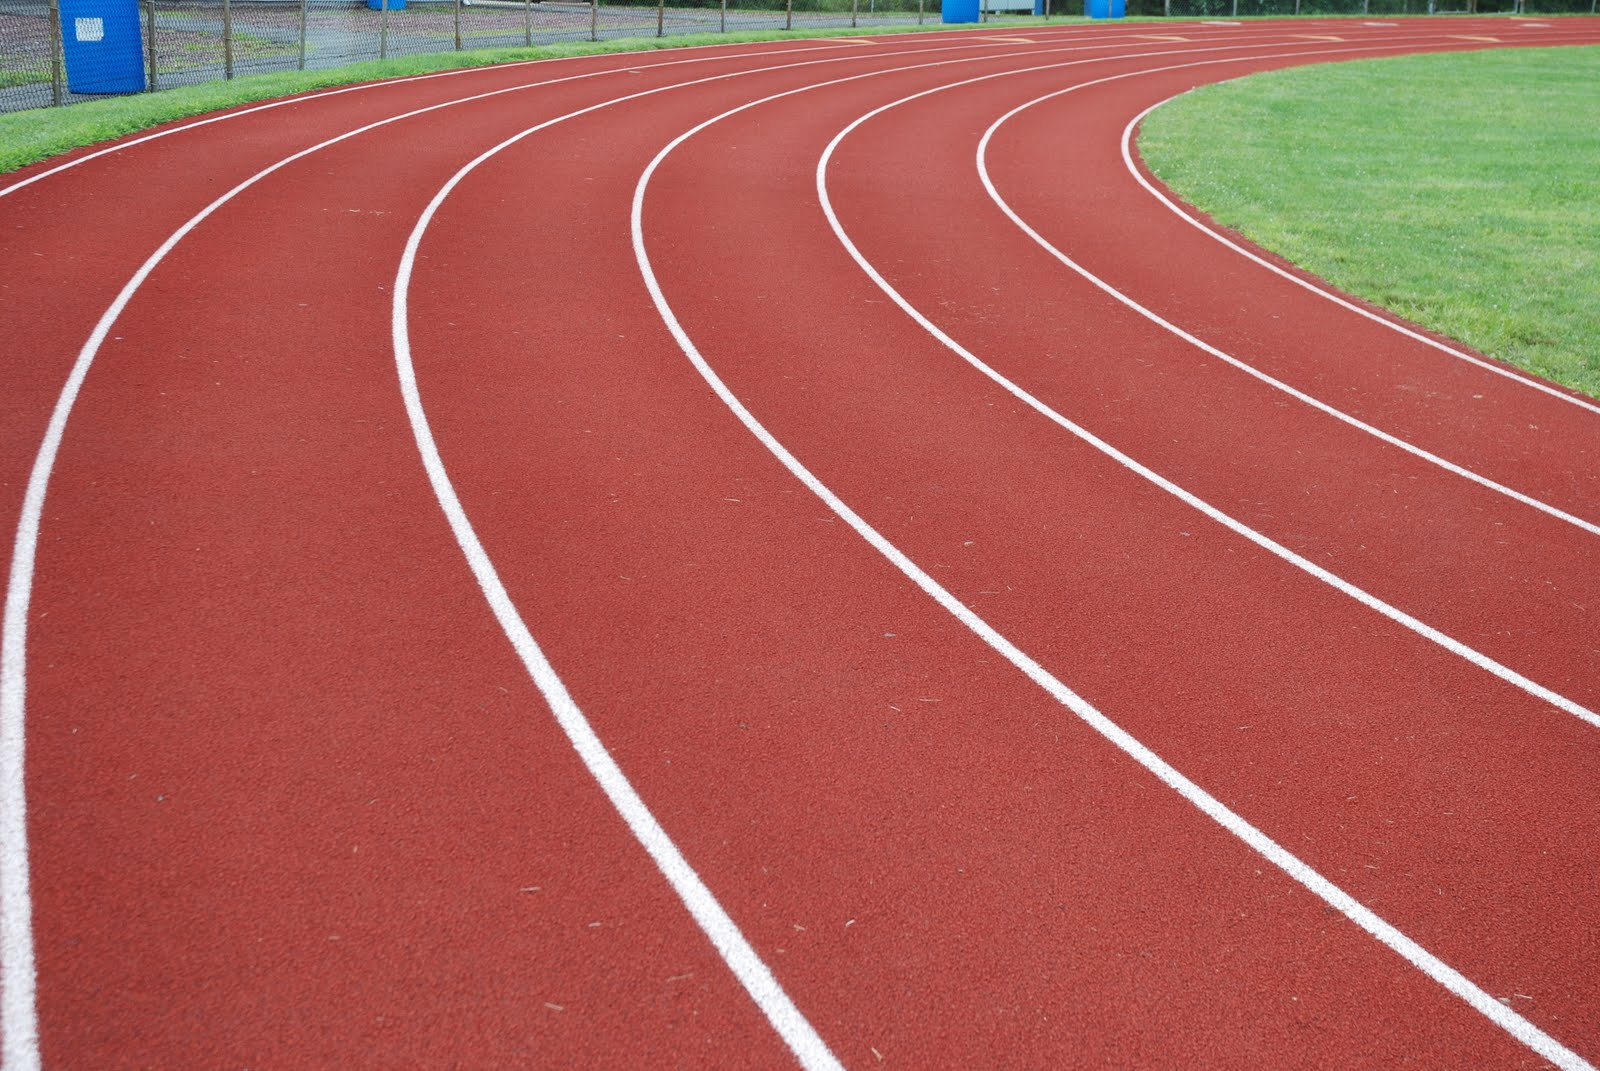 Finishing Strong: CHS Track – The Entry